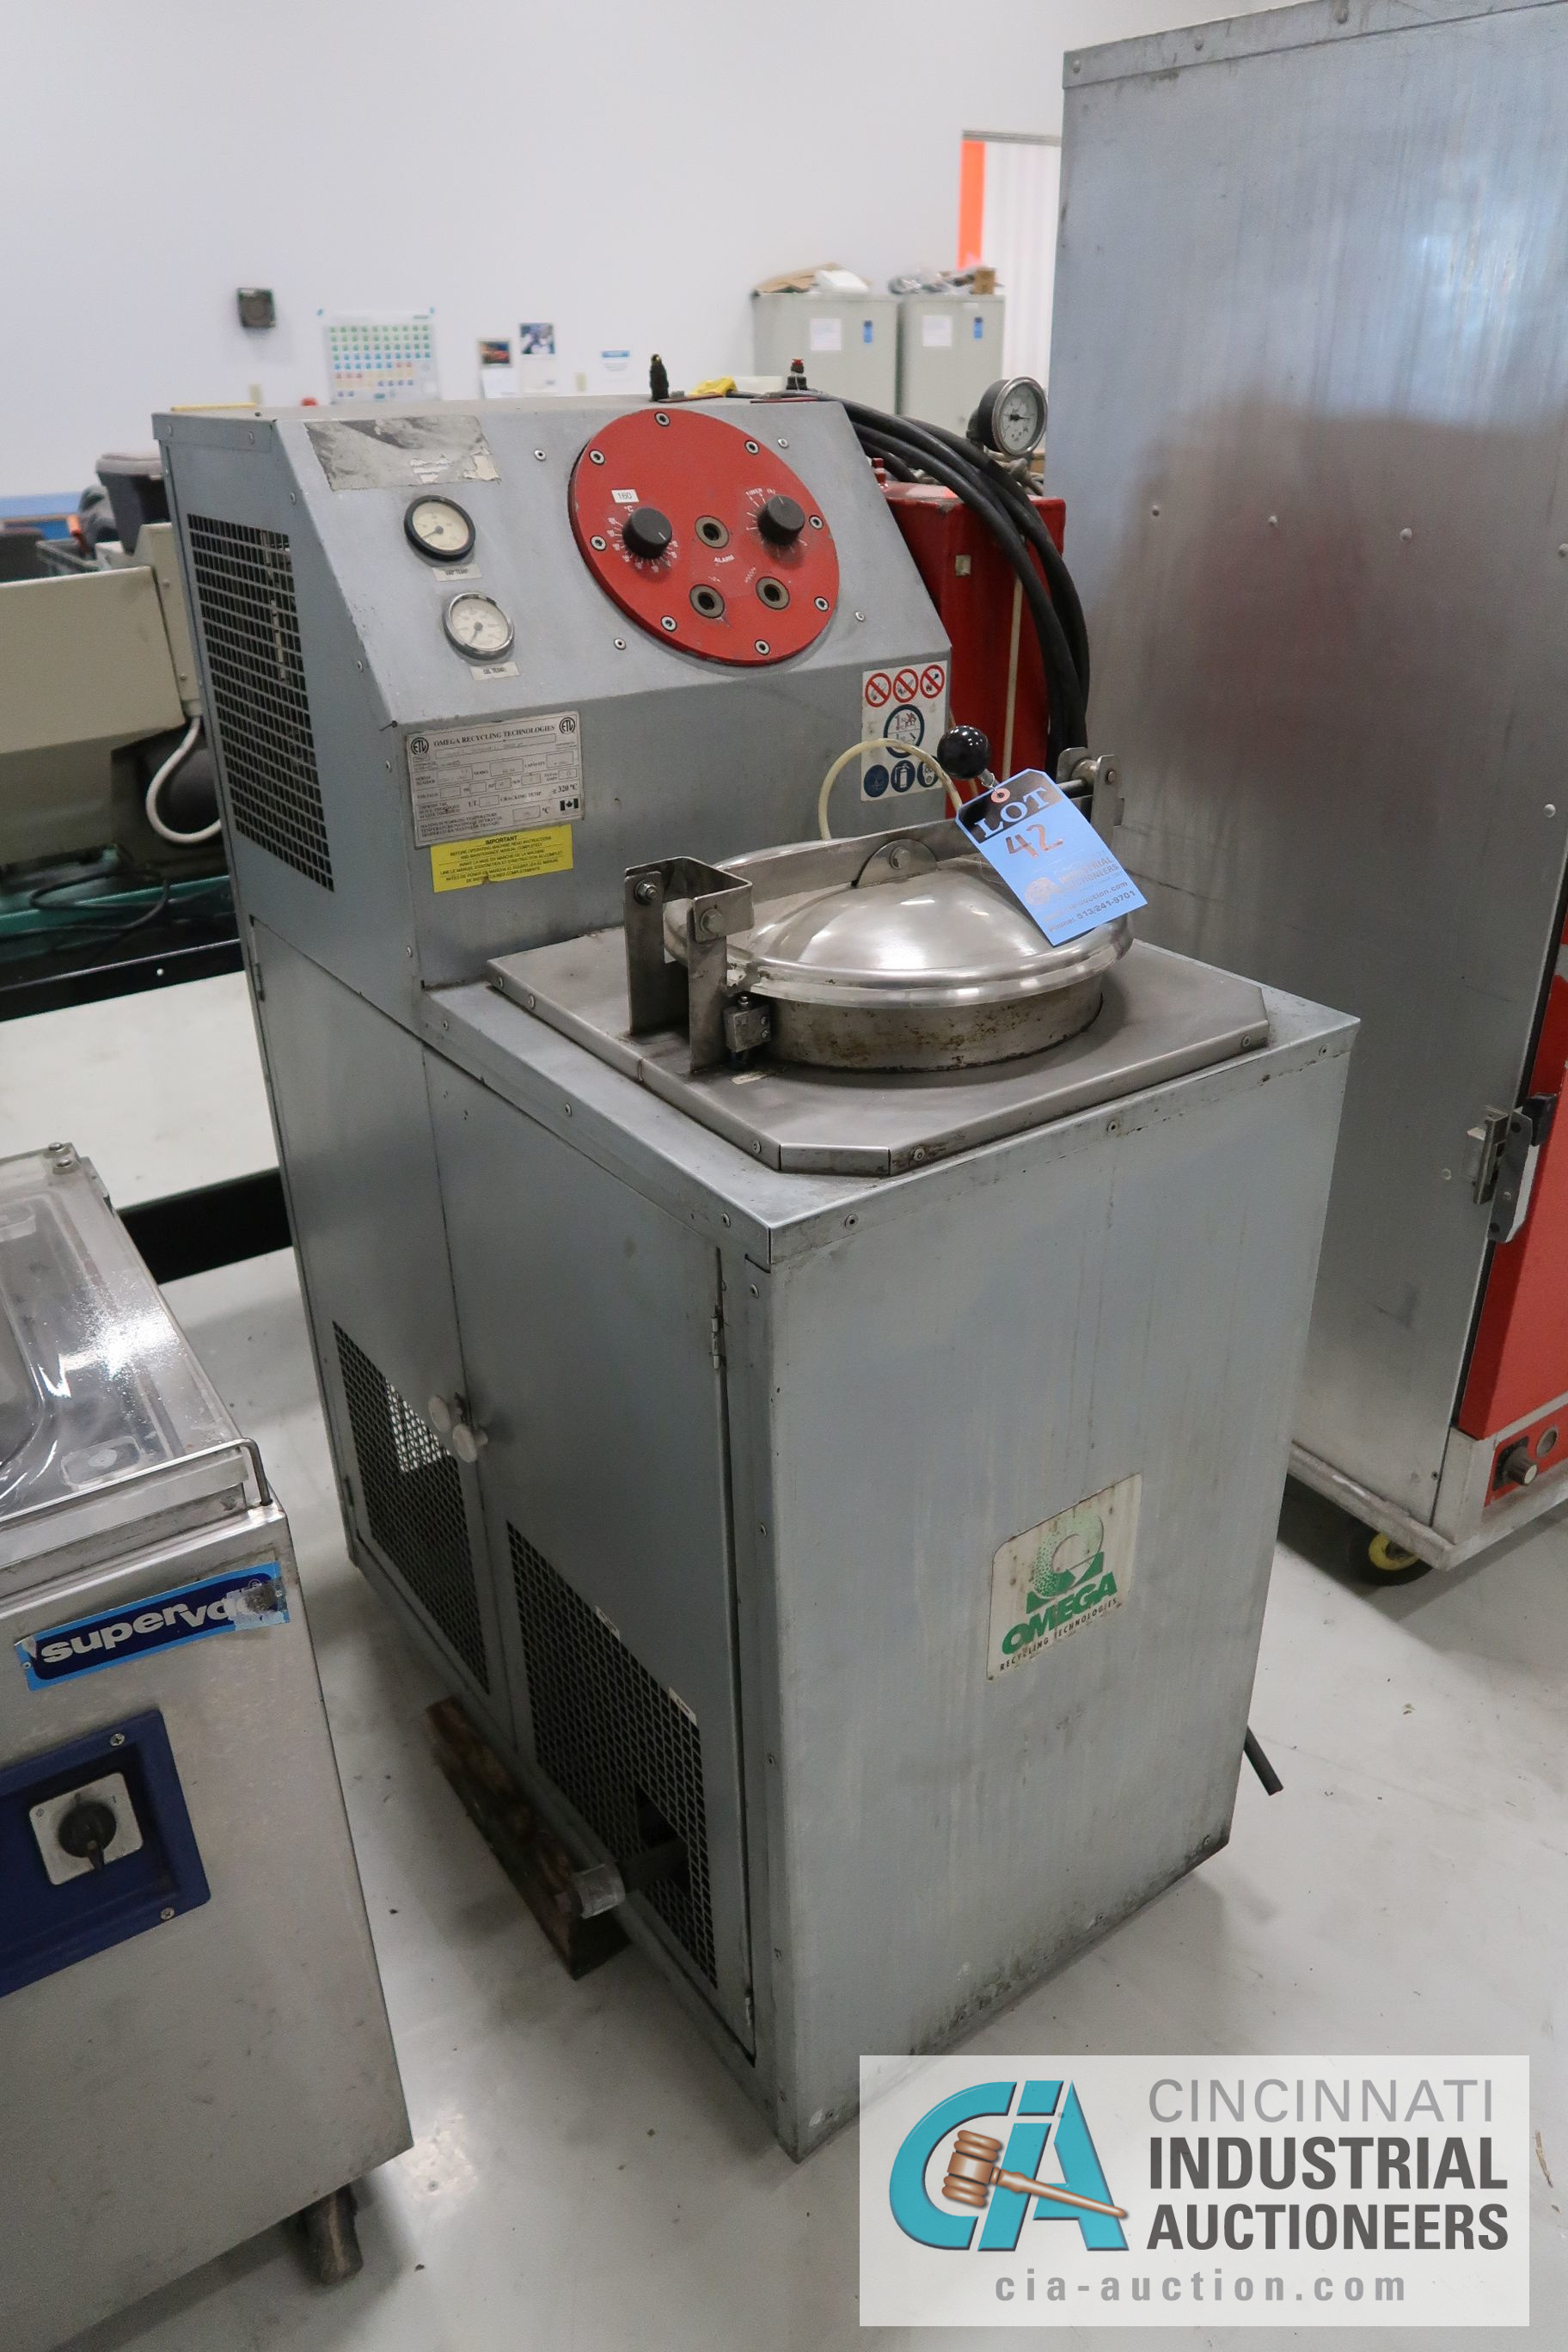 6 GAL. OMEGA RECYCLING TECHNOLIGES MODEL RS-6A SOLVENT RECOVERY UNIT; S/N 0304-1843VP - Image 2 of 5